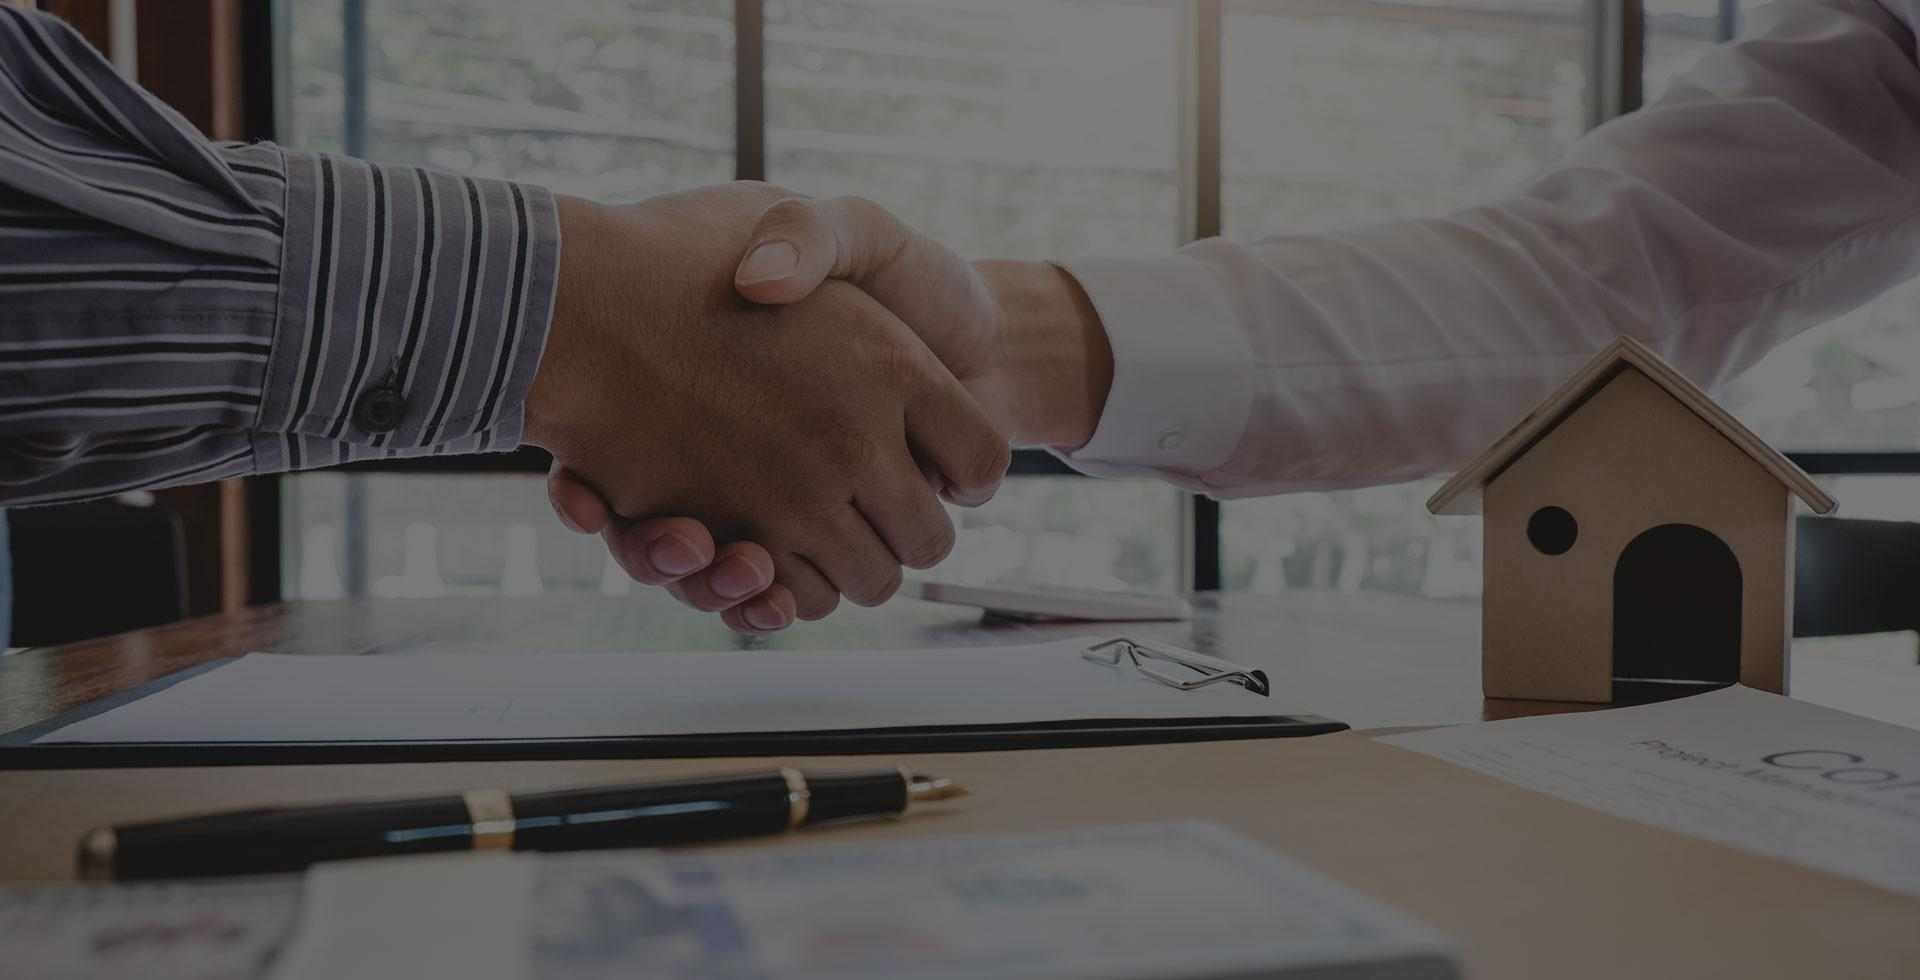 Meet with Capstone Title because the right title and business relationship matters.